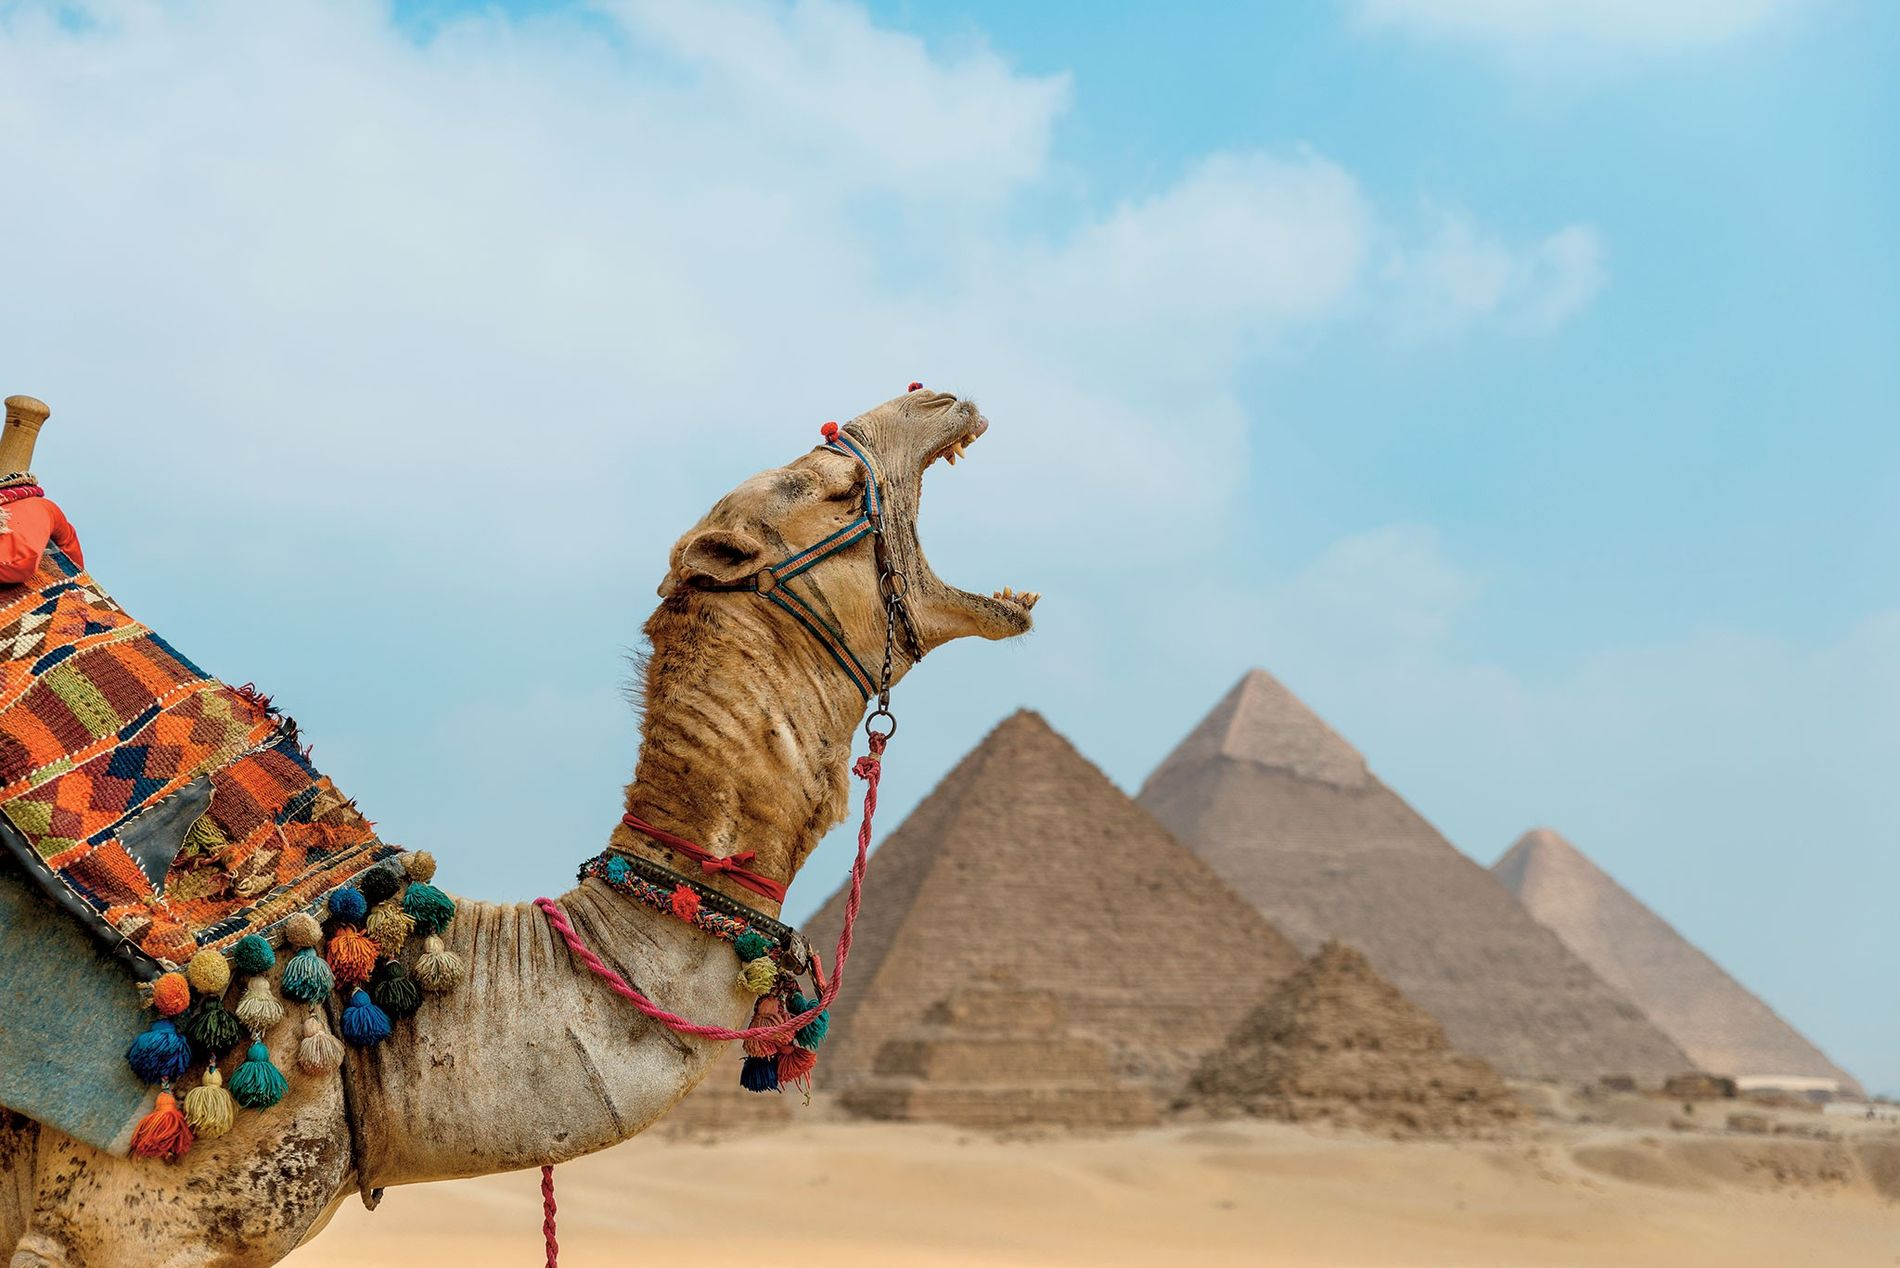 A yawning camel poses in front of the monumental Pyramids at Giza.